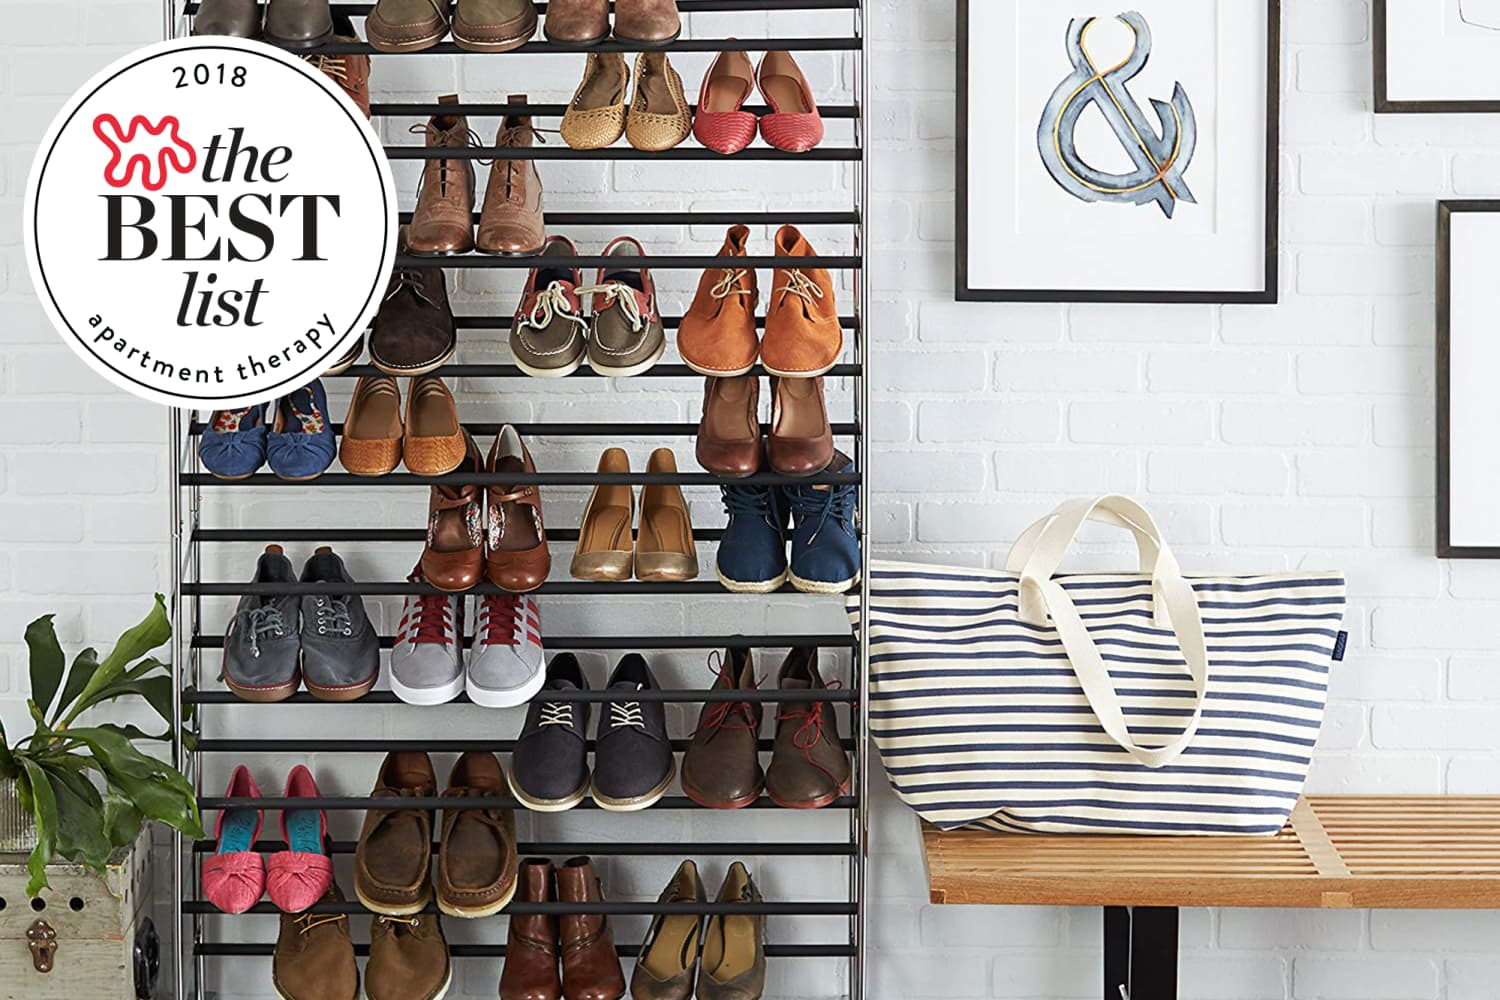 The 10 Best Solutions for Shoe Storage